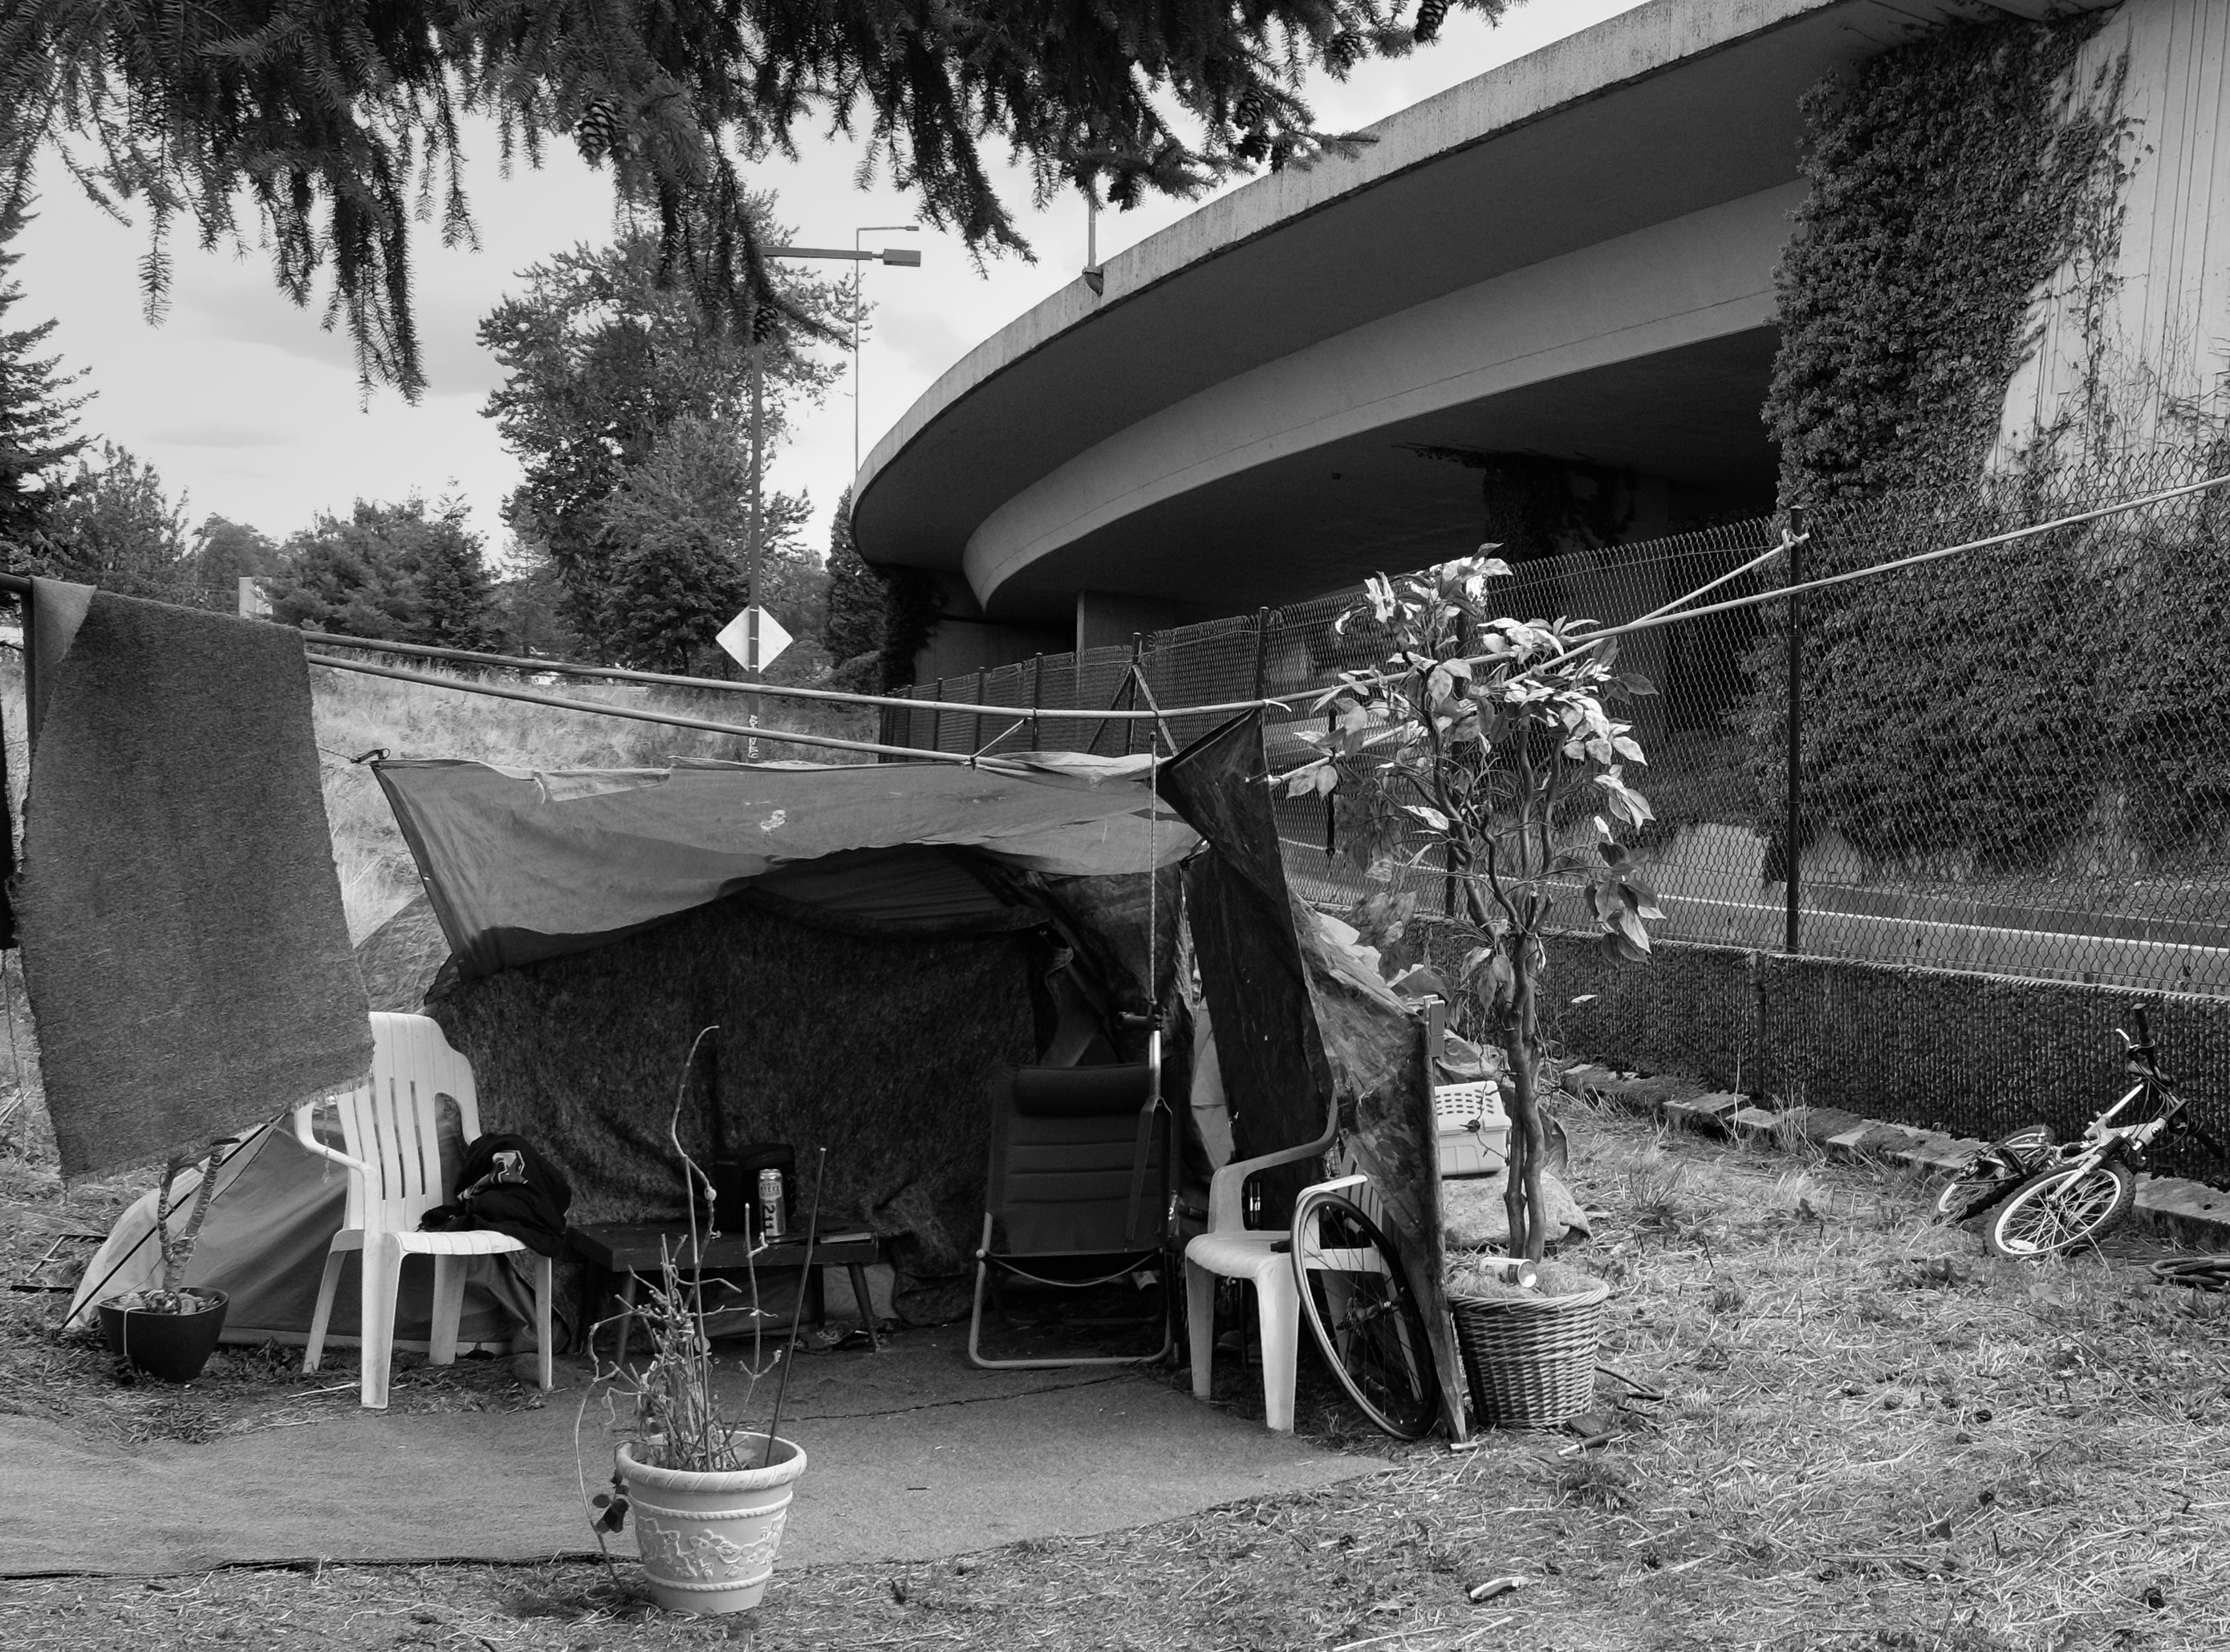 Plastic chairs, potted plants and a tarp in a wooded area near a turn off and overpass